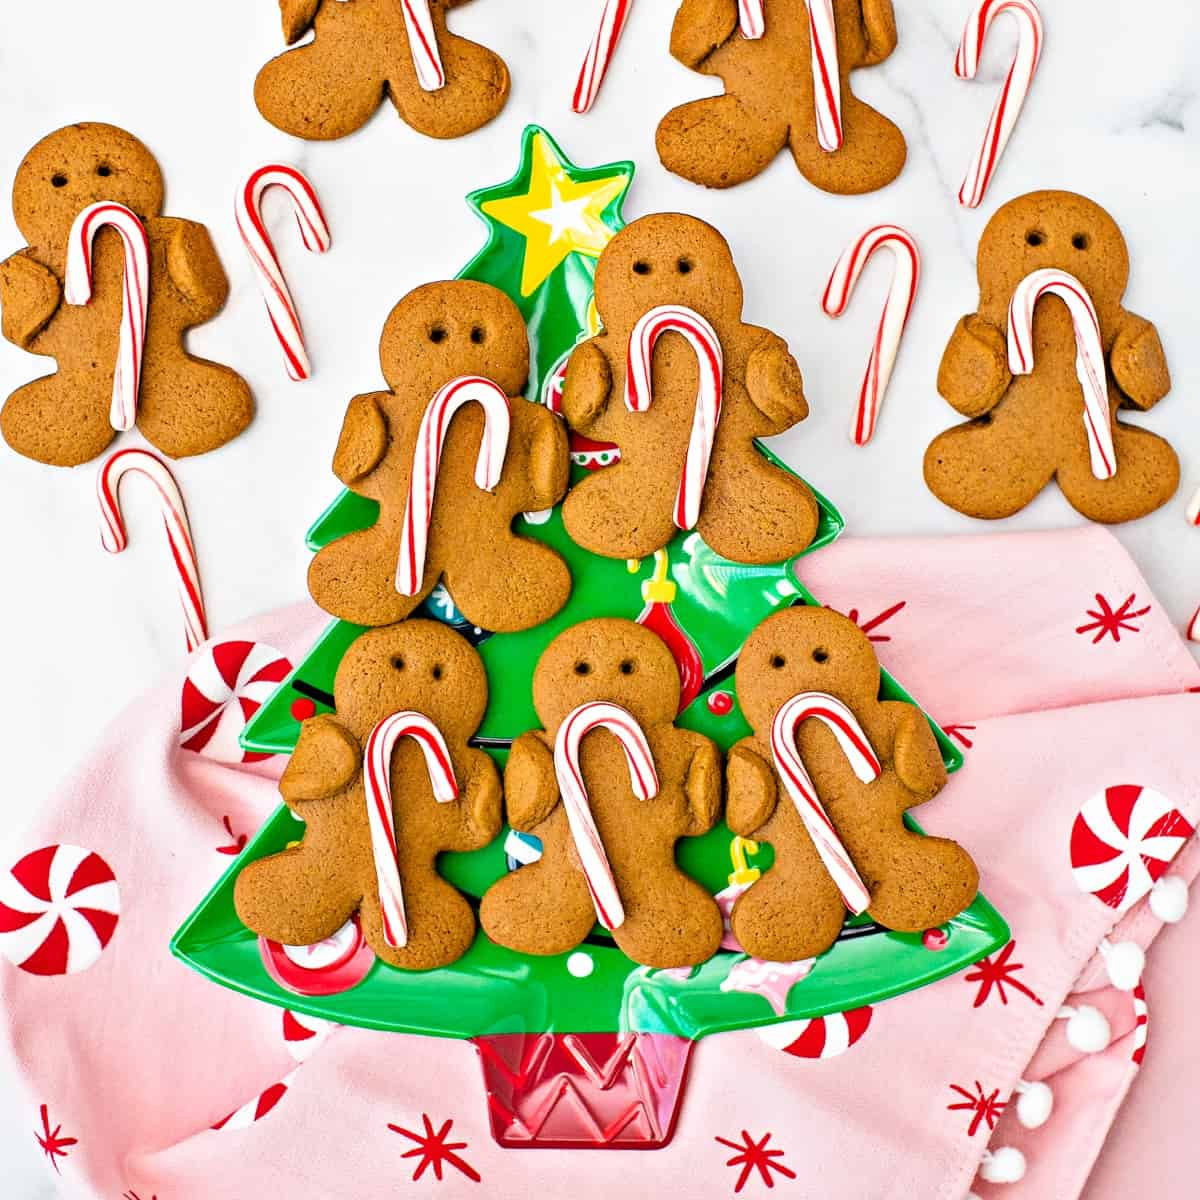 Gingerbread Holding Candy Canes